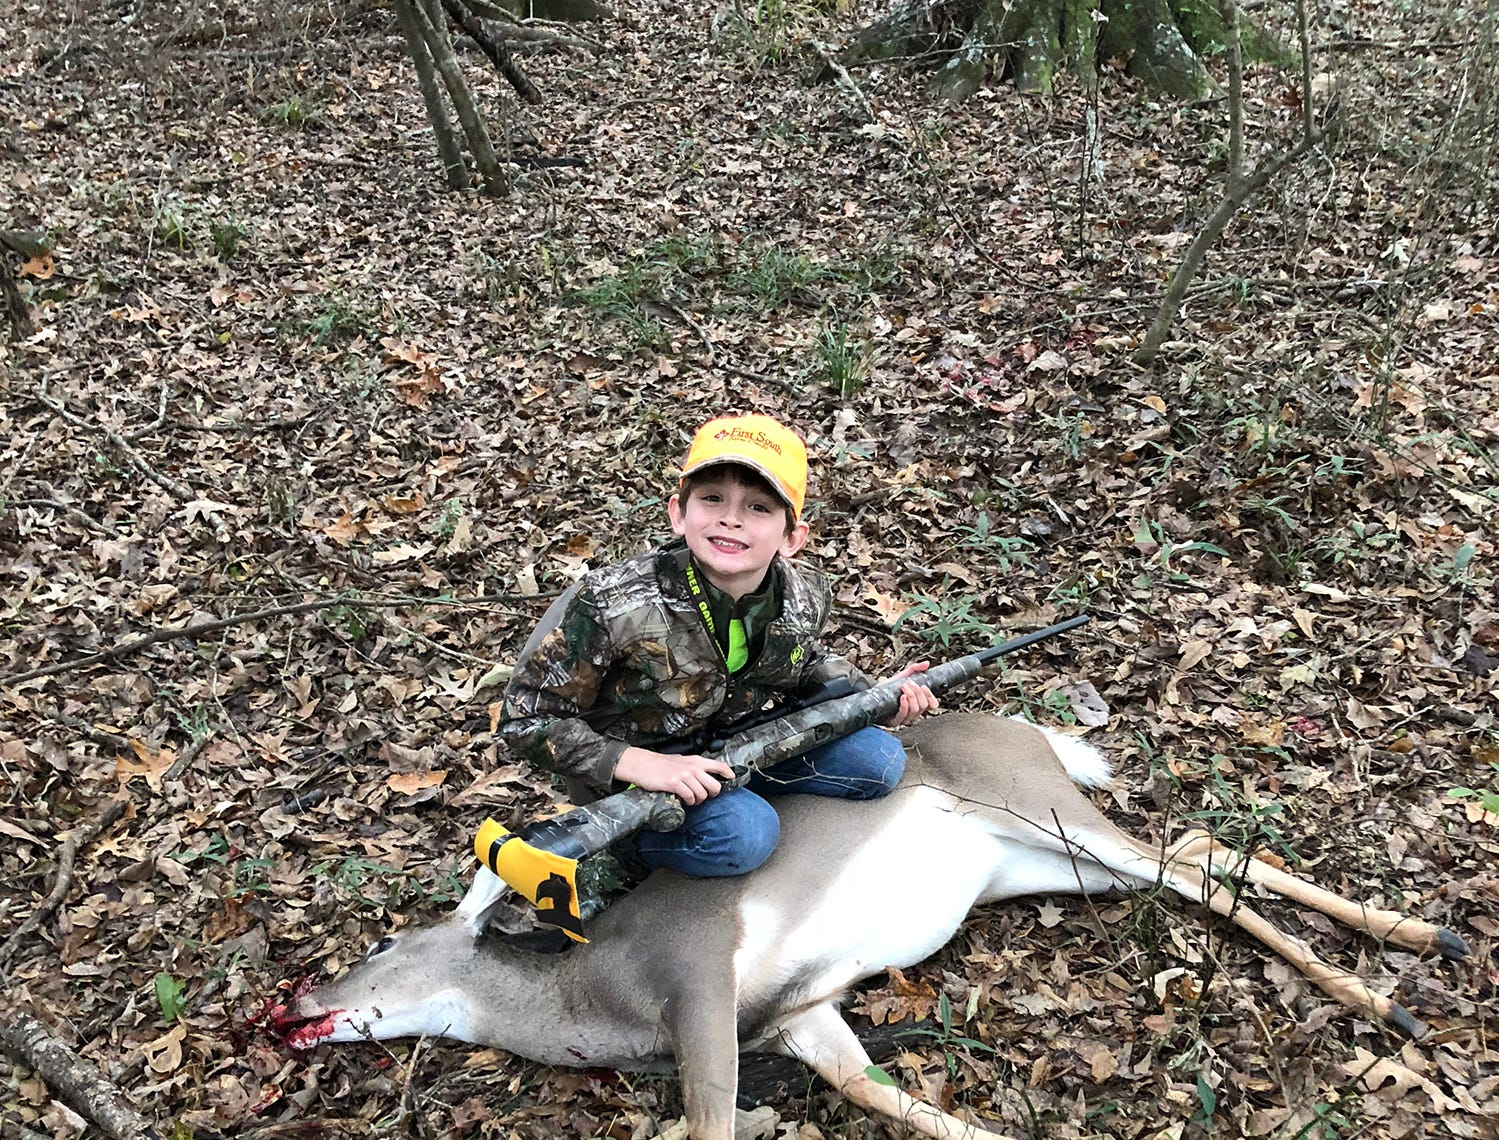 Garrett Sullivan, 8, of Madison, harvested his first deer in Holmes County on Thanksgiving Day.